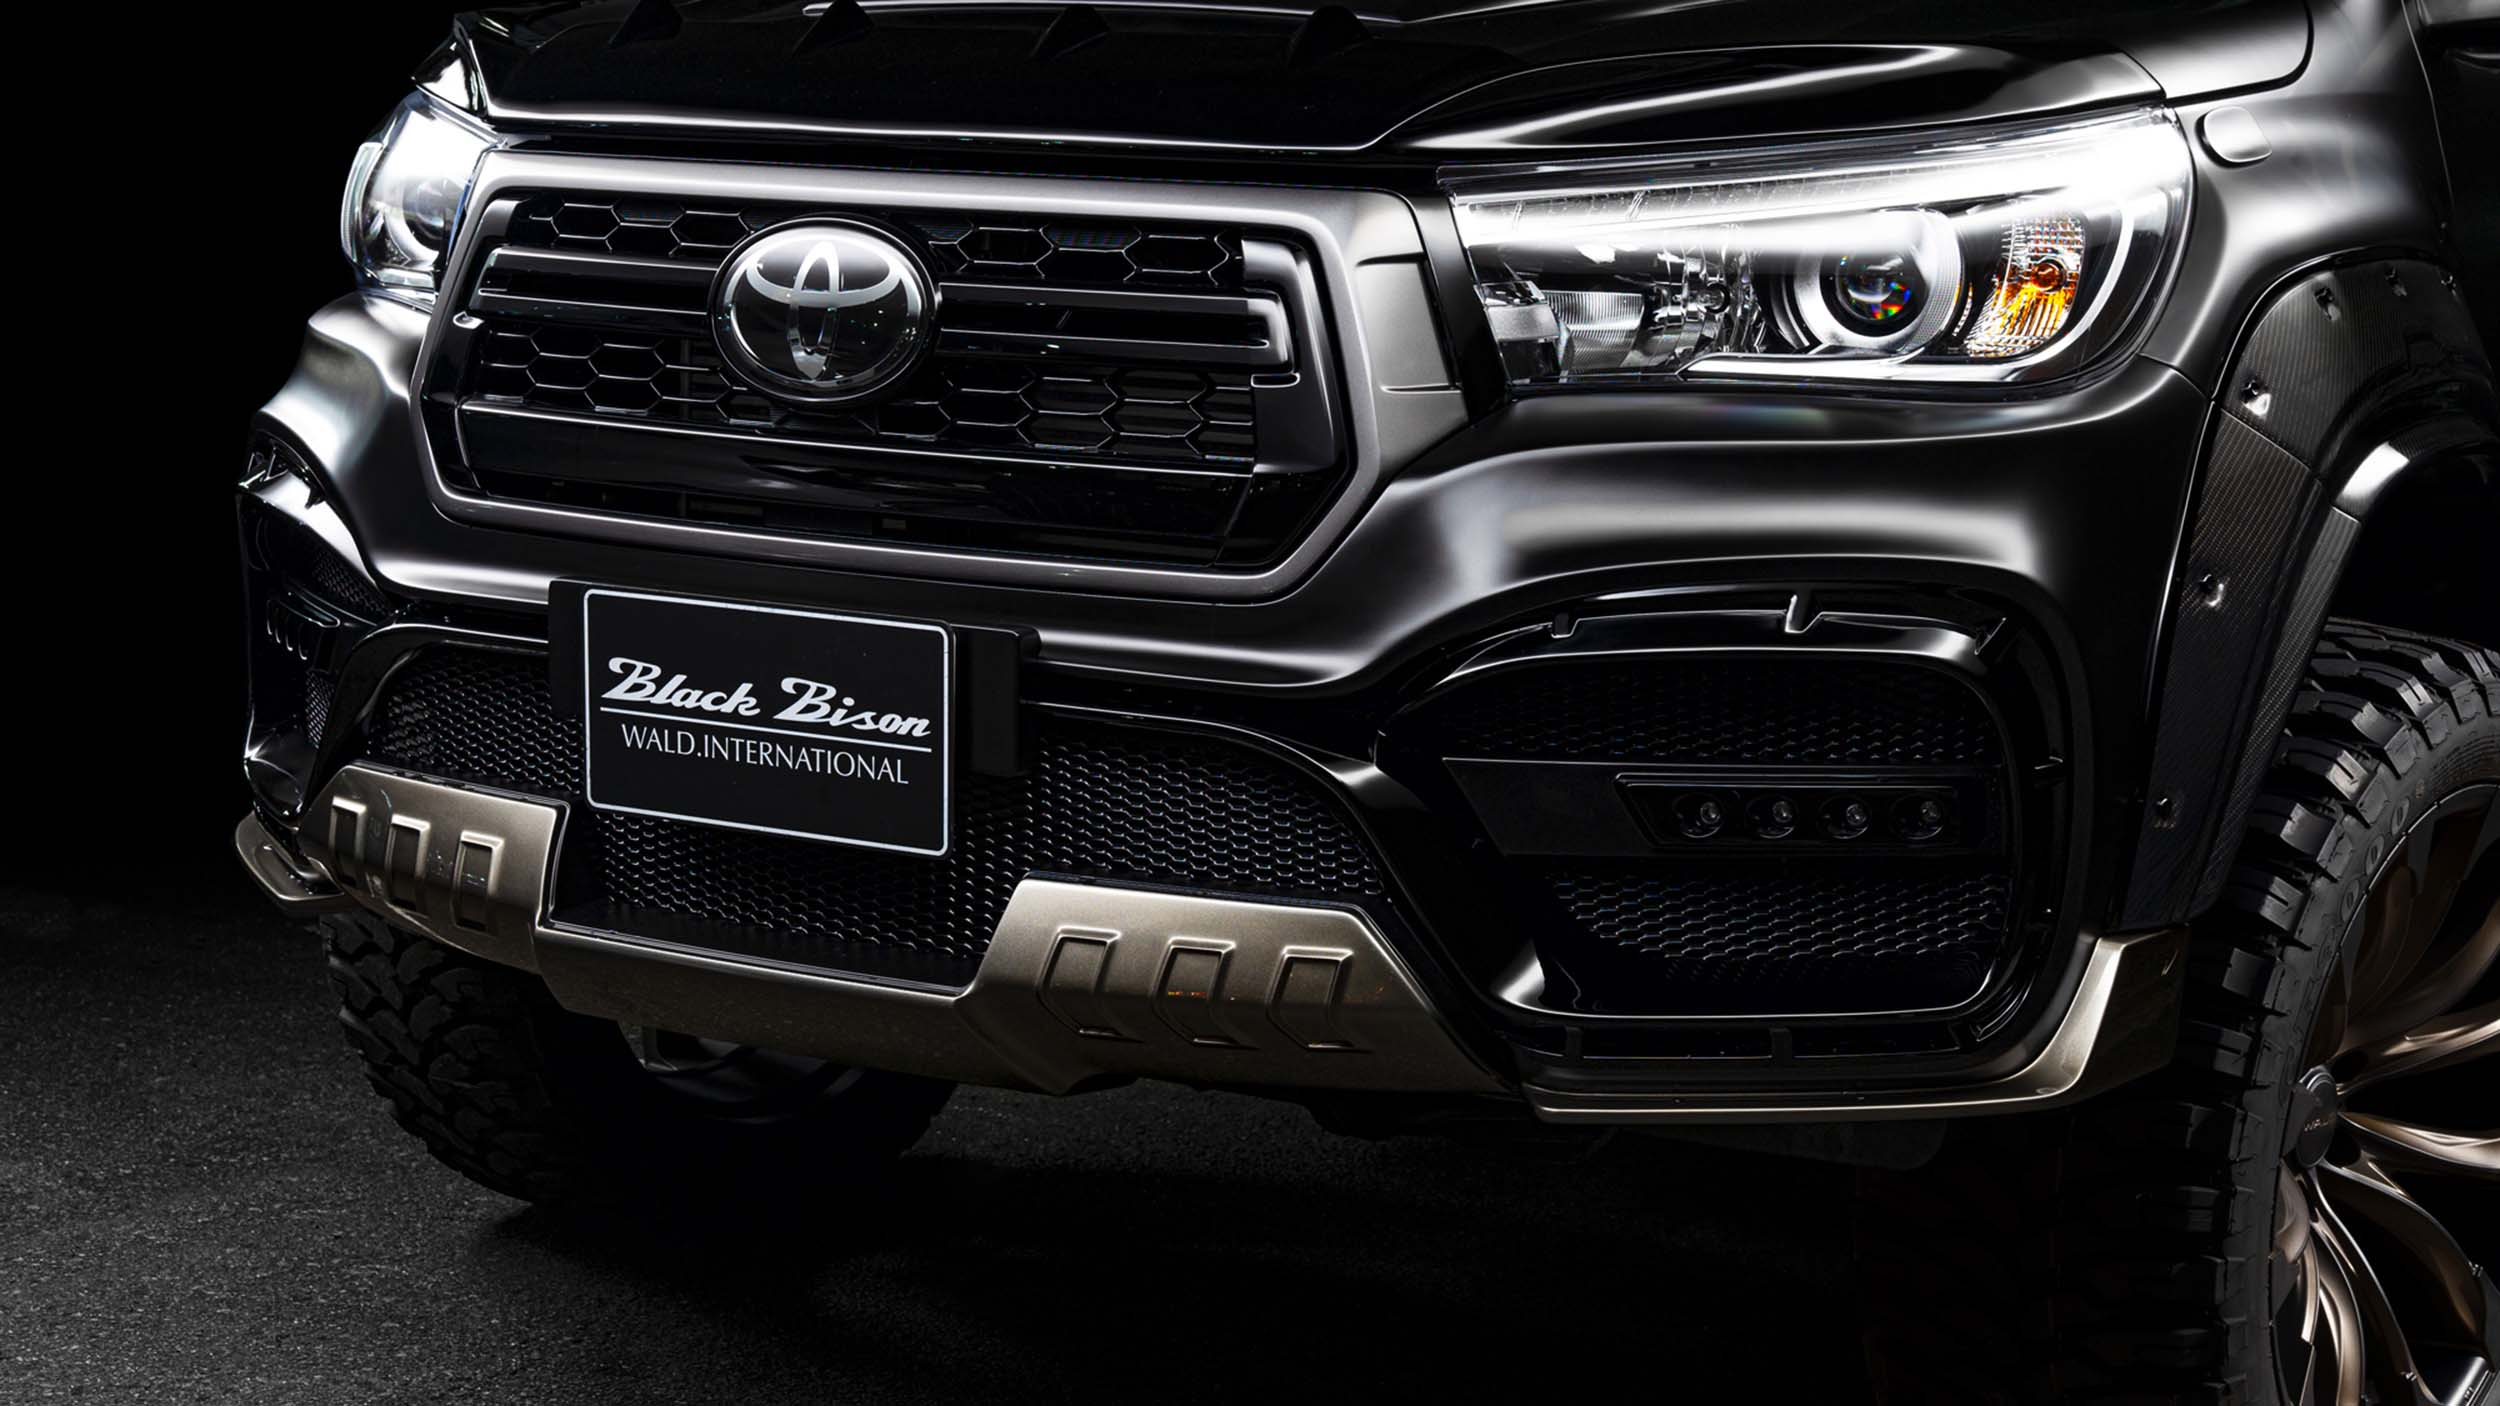 wald toyota hilux sports line black bison edition 67